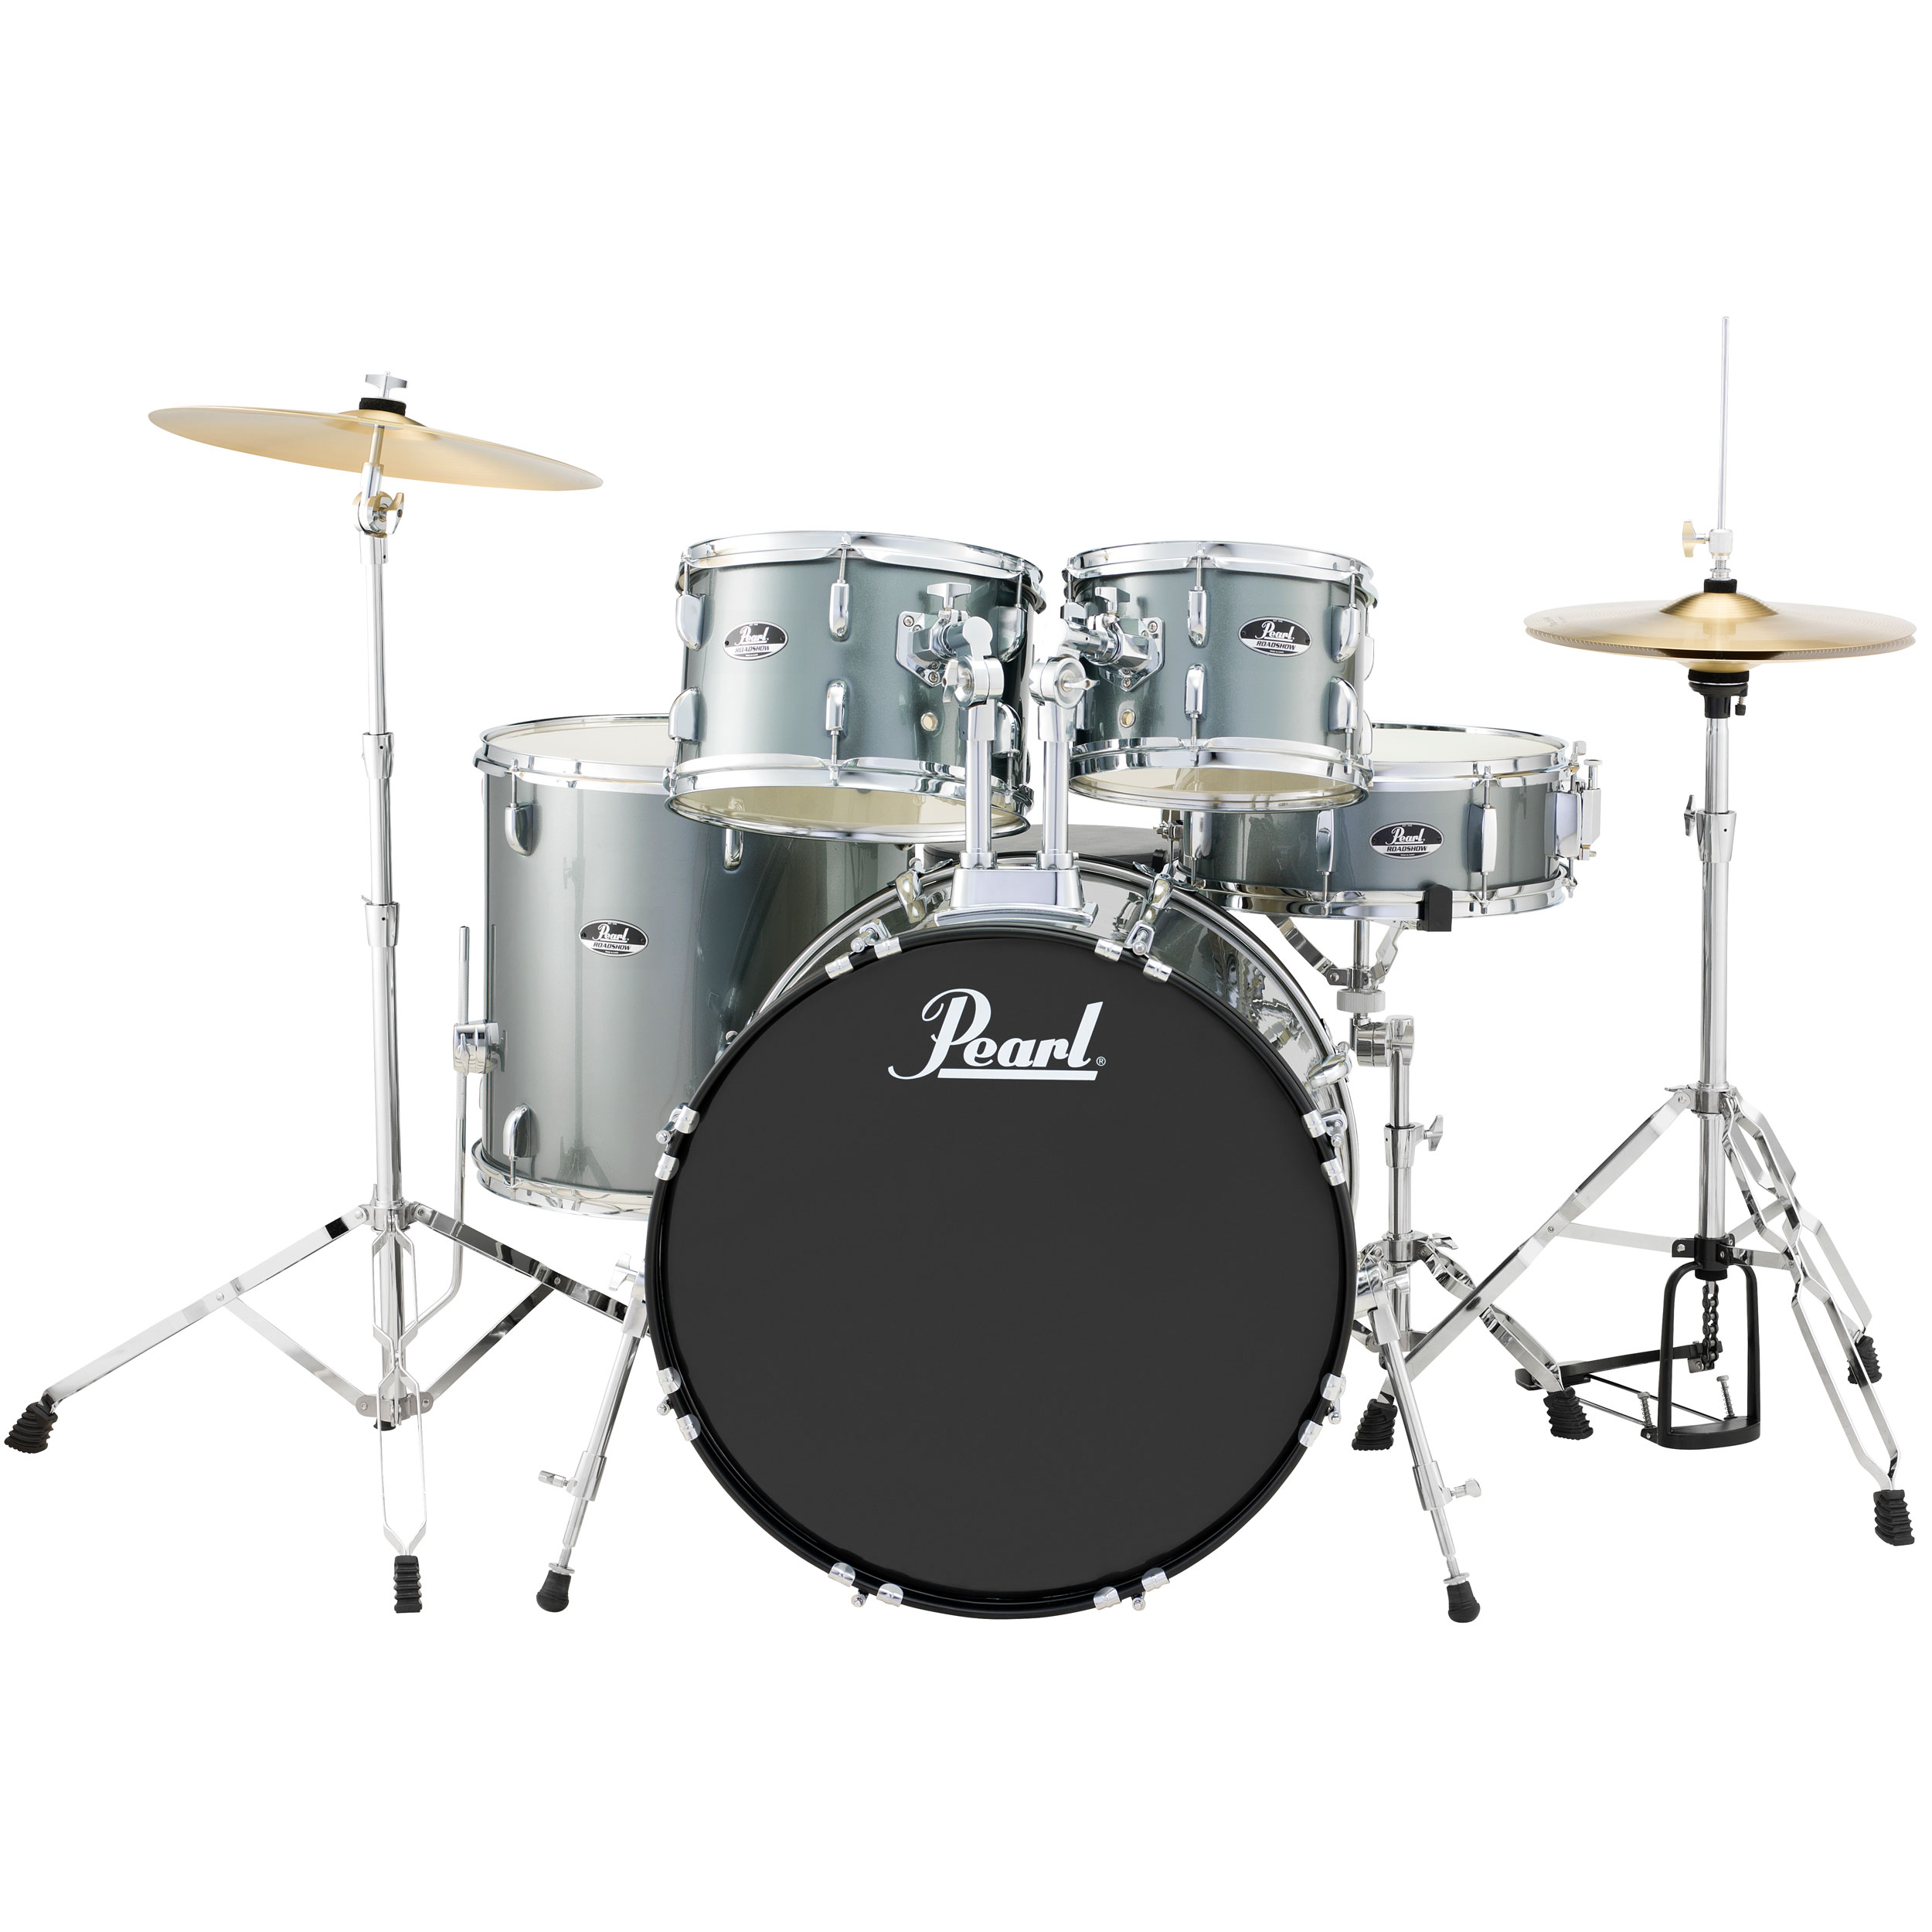 "Pearl Roadshow ""The Standard"" 5-Piece Drum Set with Hardware and Cymbals (22"" Bass, 10/12/16"" Toms, 14"" Snare)"